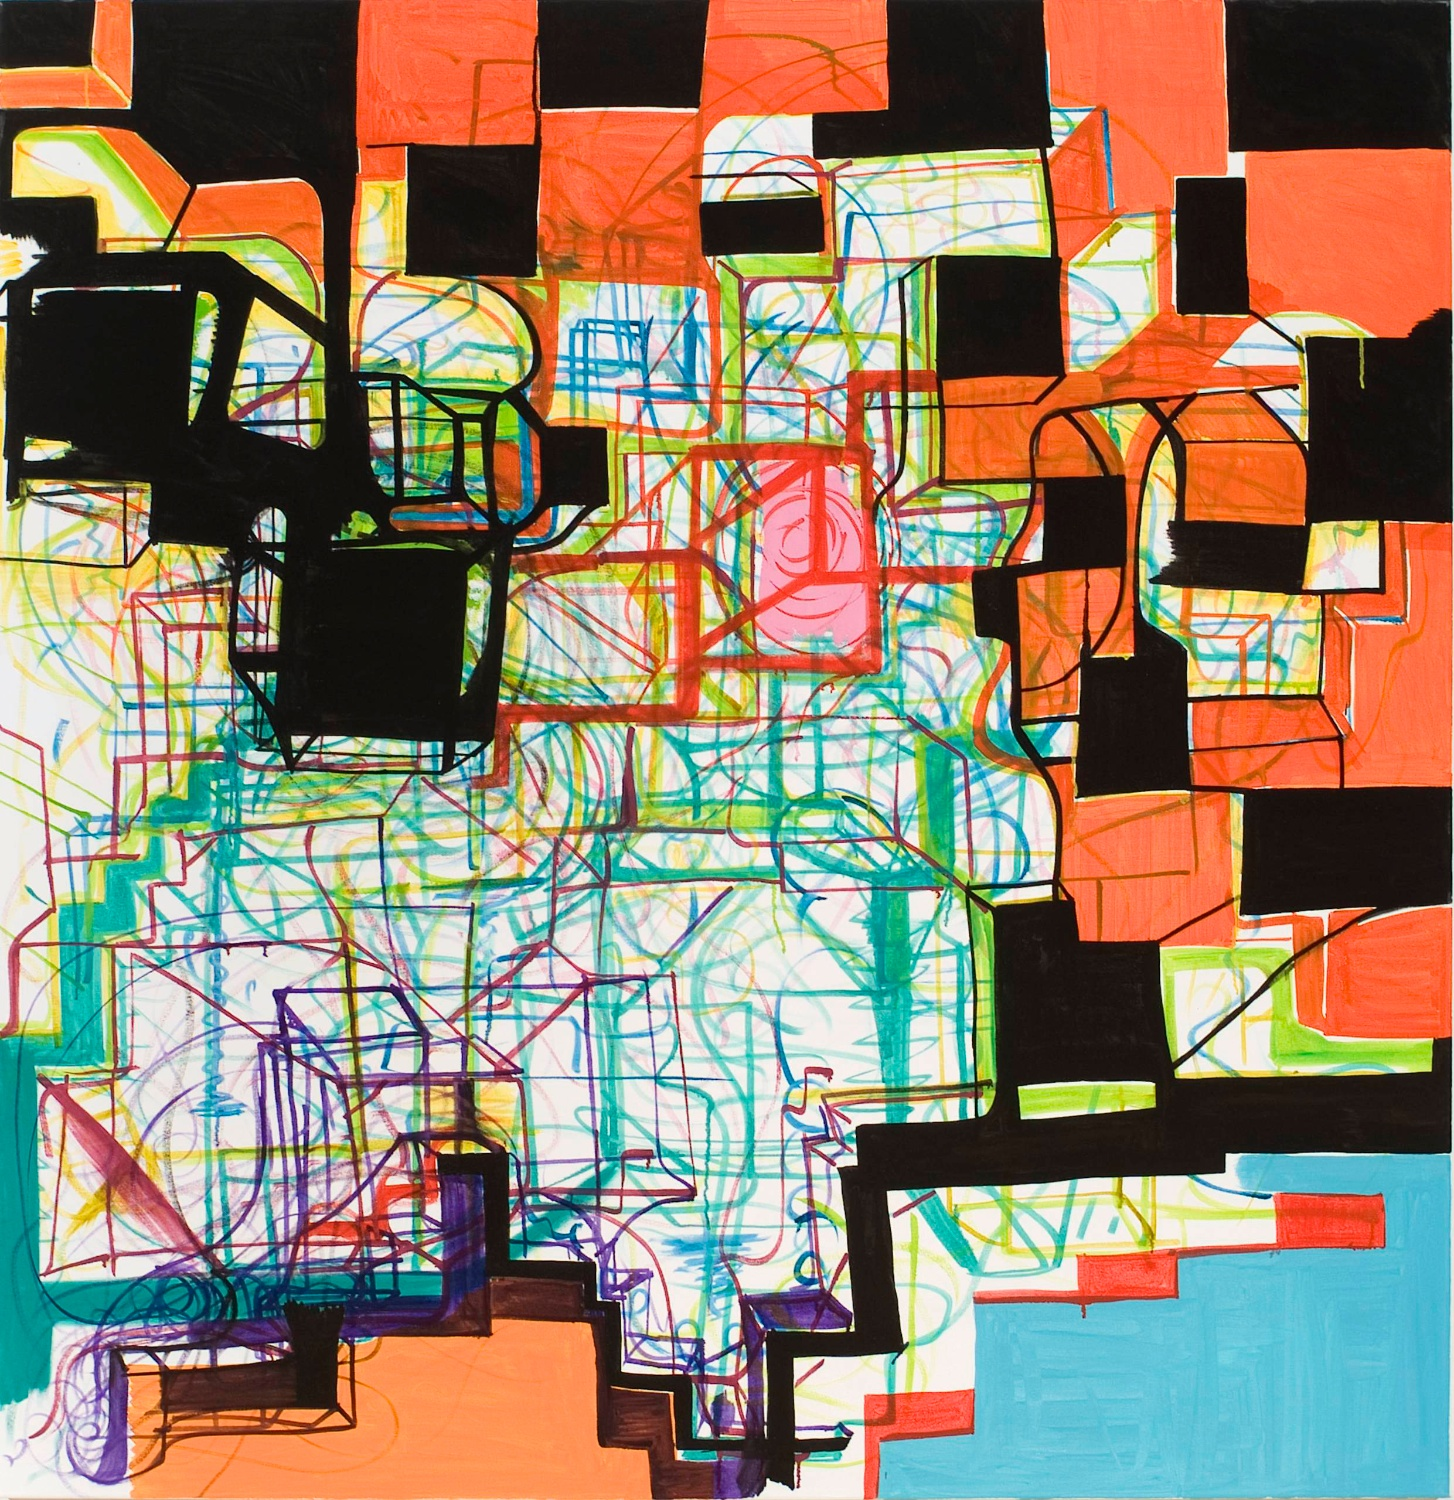 "Joanne Greenbaum Untitled 2007 Oil, flashe, and acrylic on canvas 66"" x 64"" JG003"